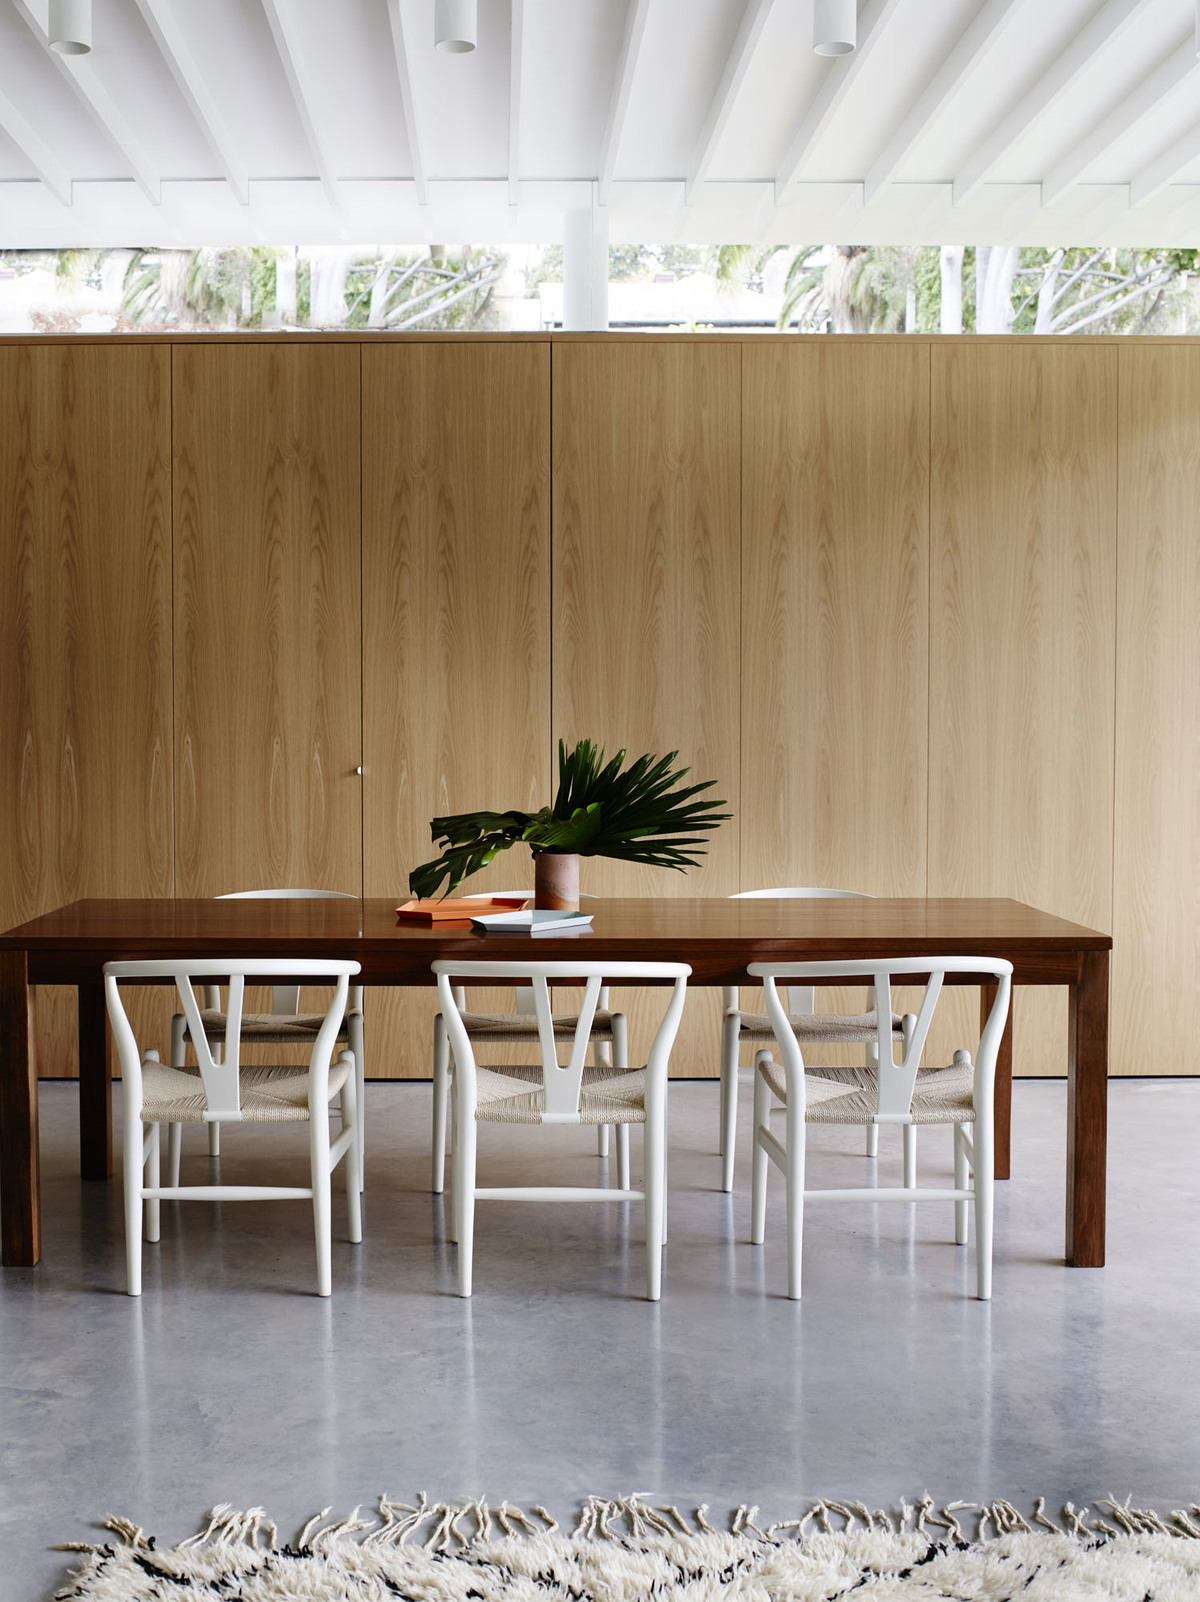 Coogee House - Australian Timber Diningroom - Madeleine Blanchfield Architects - Interior Archive